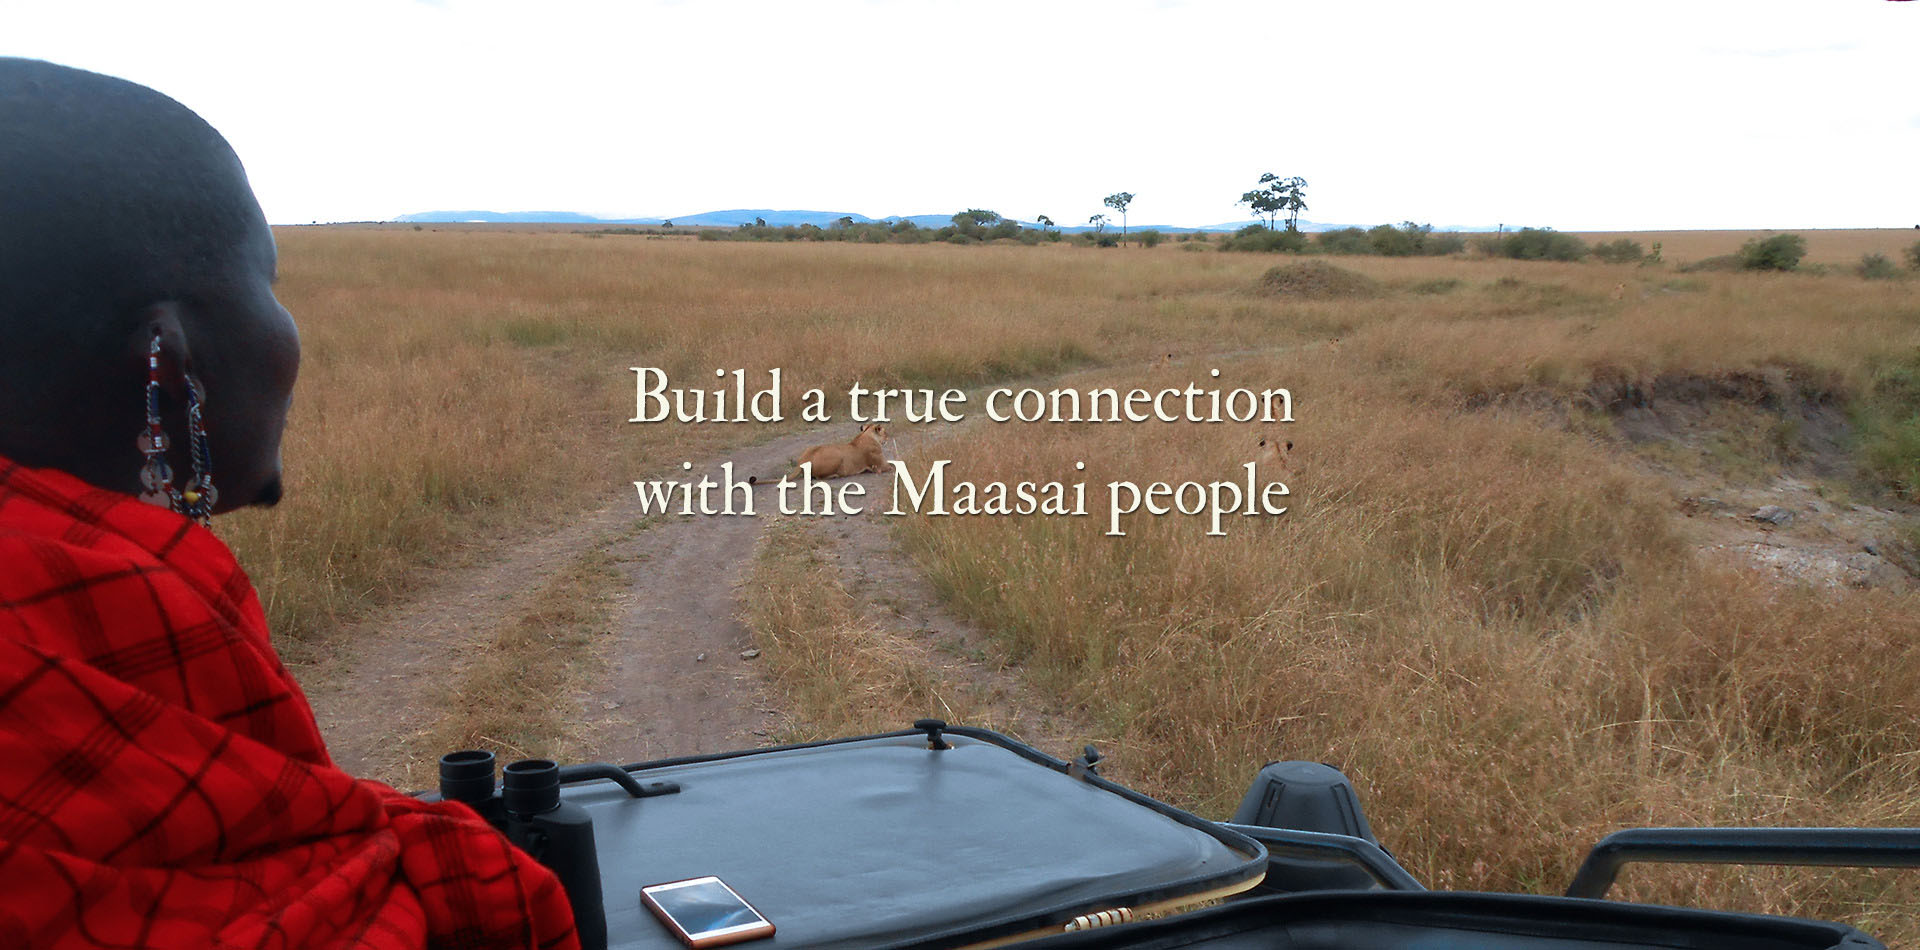 Experience-Build-Connection-With-The-Maasai-Slide